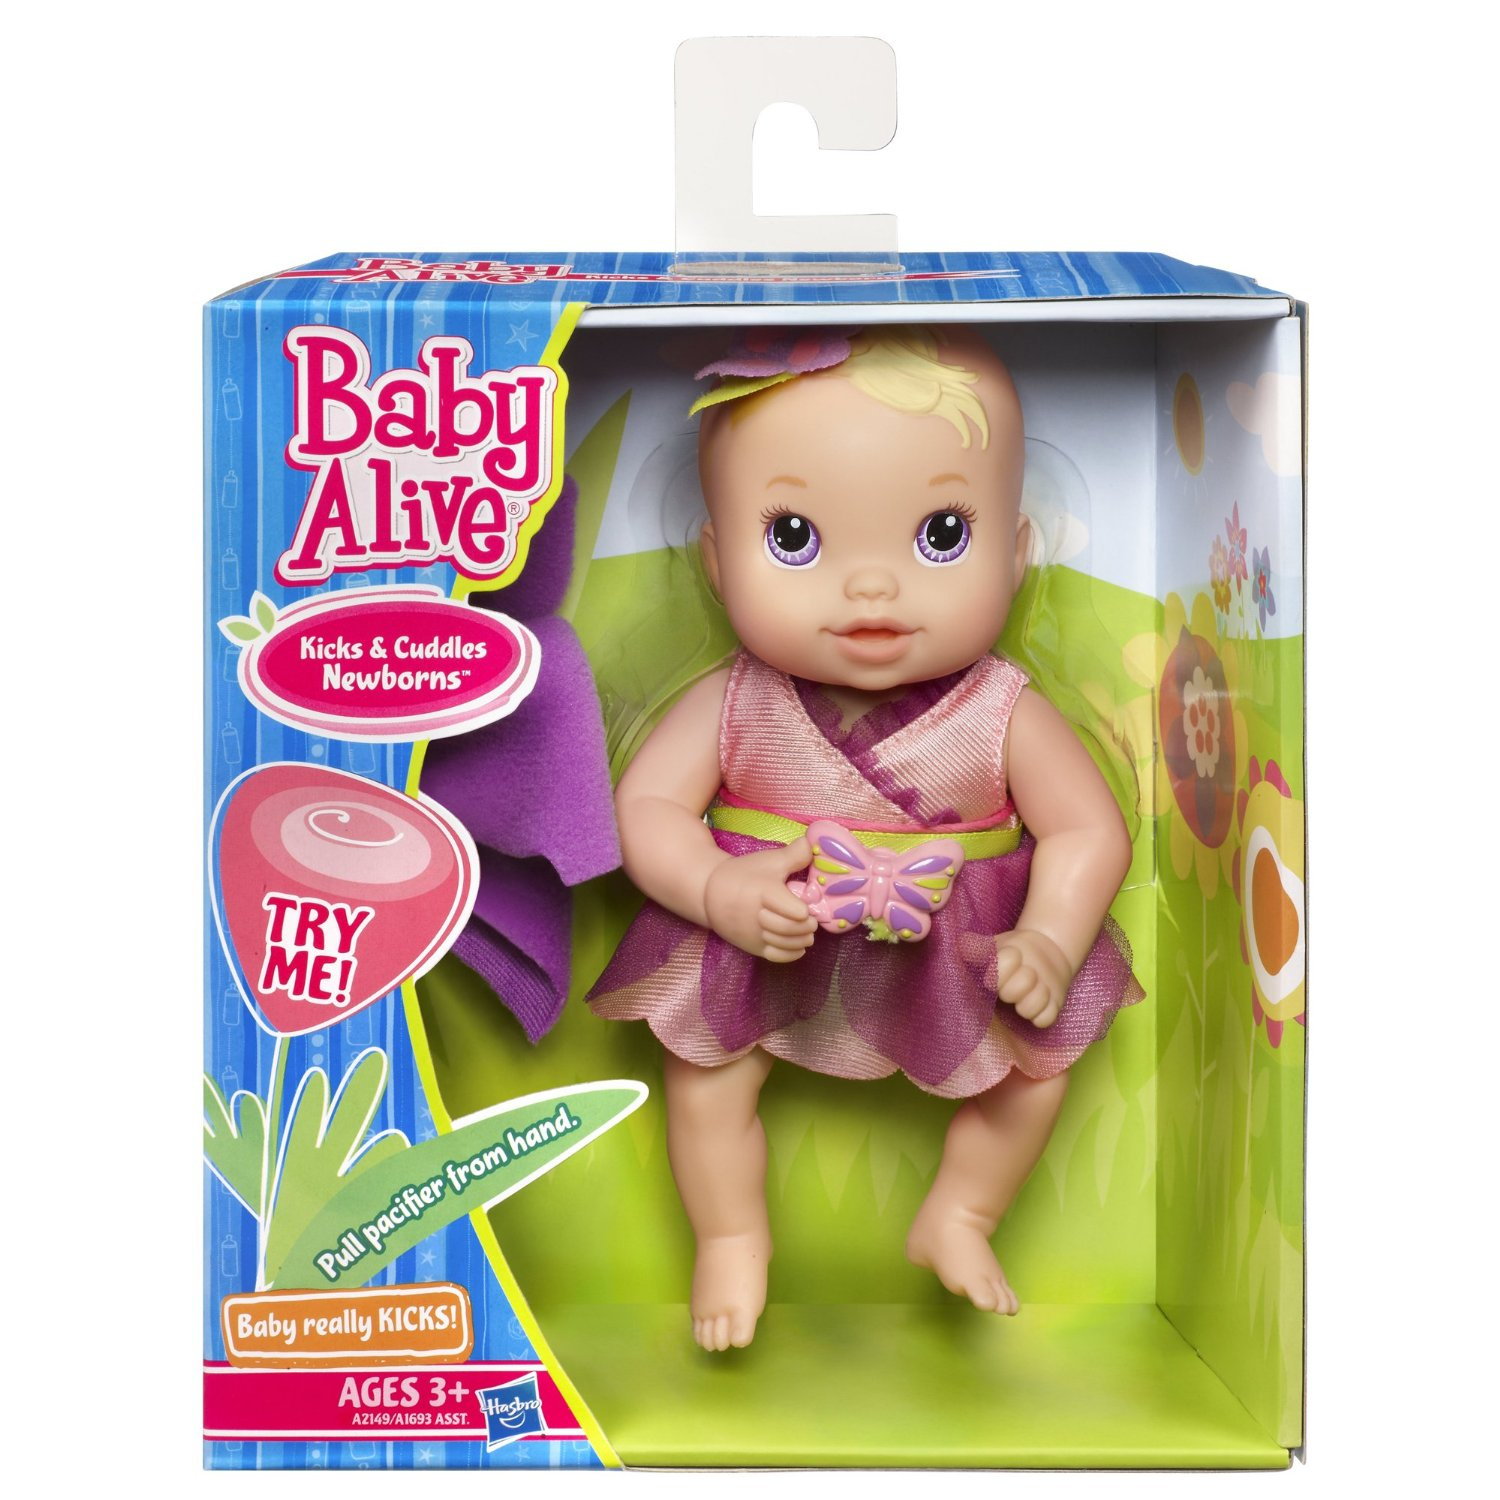 Baby Alive Kicks Amp Cuddles Newborn Only 7 70 Reg 12